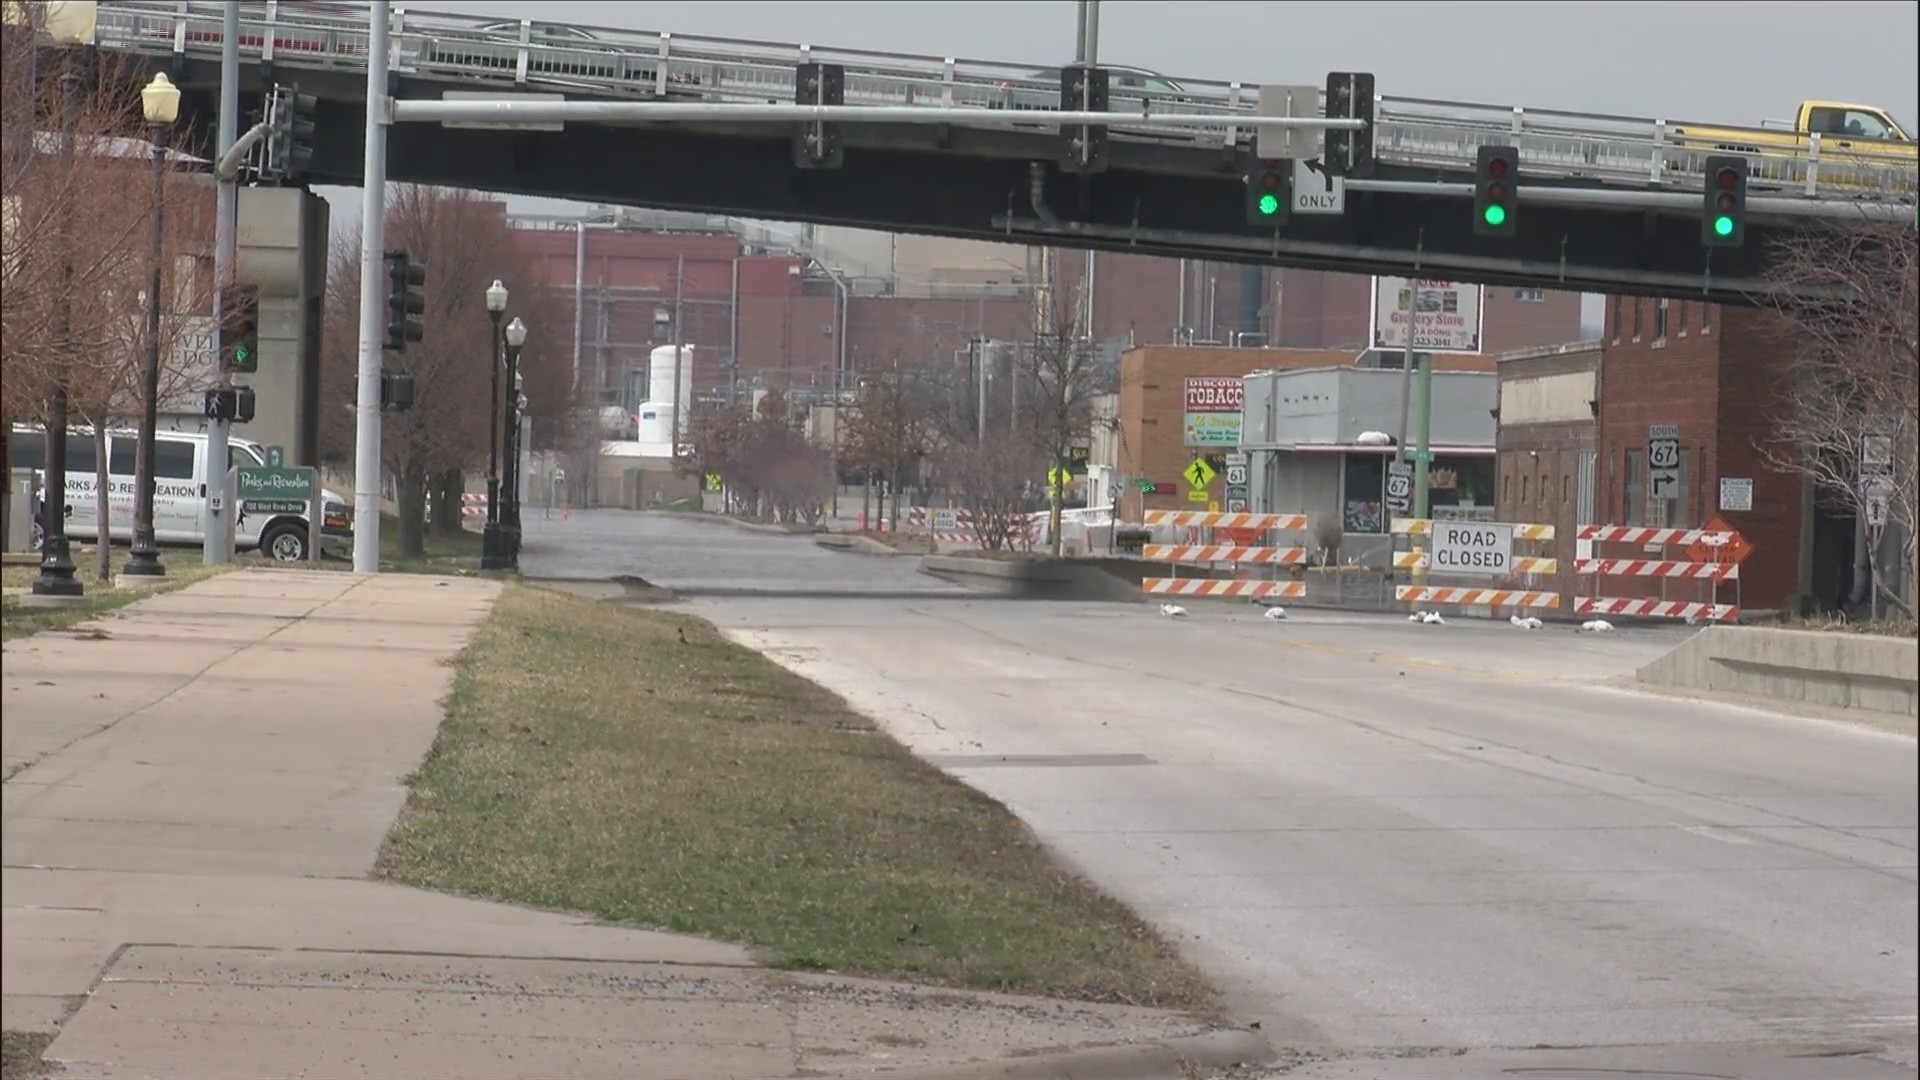 More closures on River Drive in Davenport with increasing